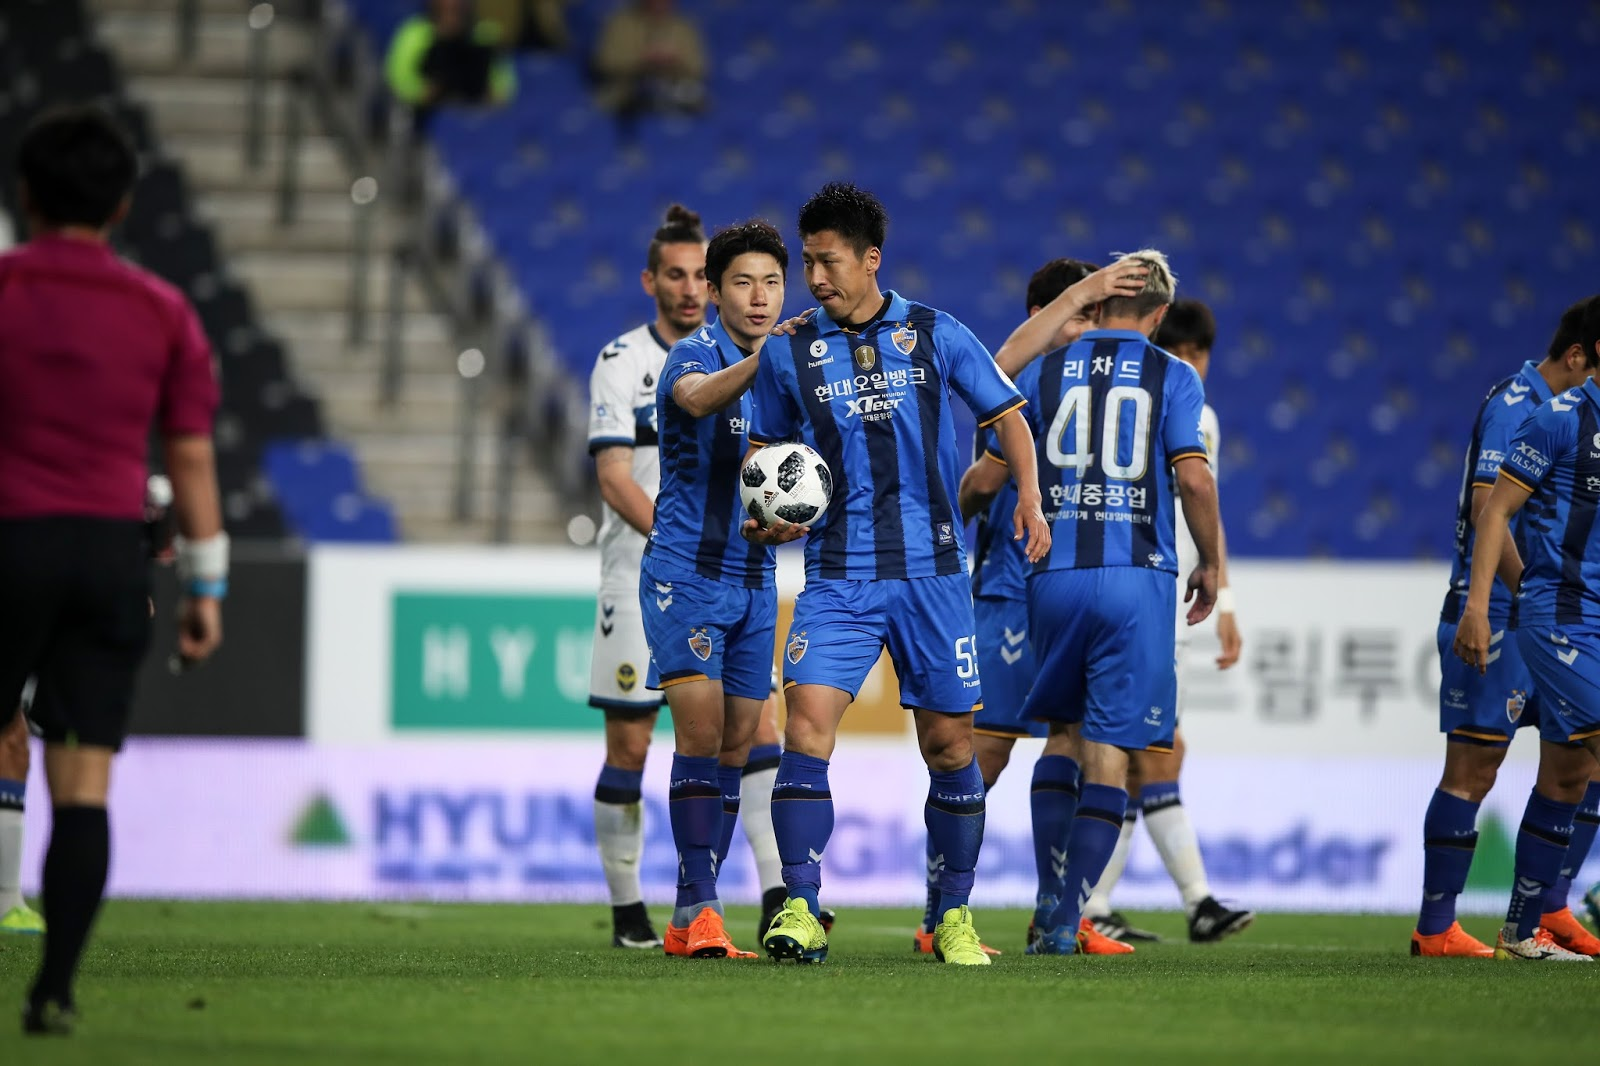 Preview: Ulsan Hyundai vs Jeonnam Dragons K League 1 Round 10